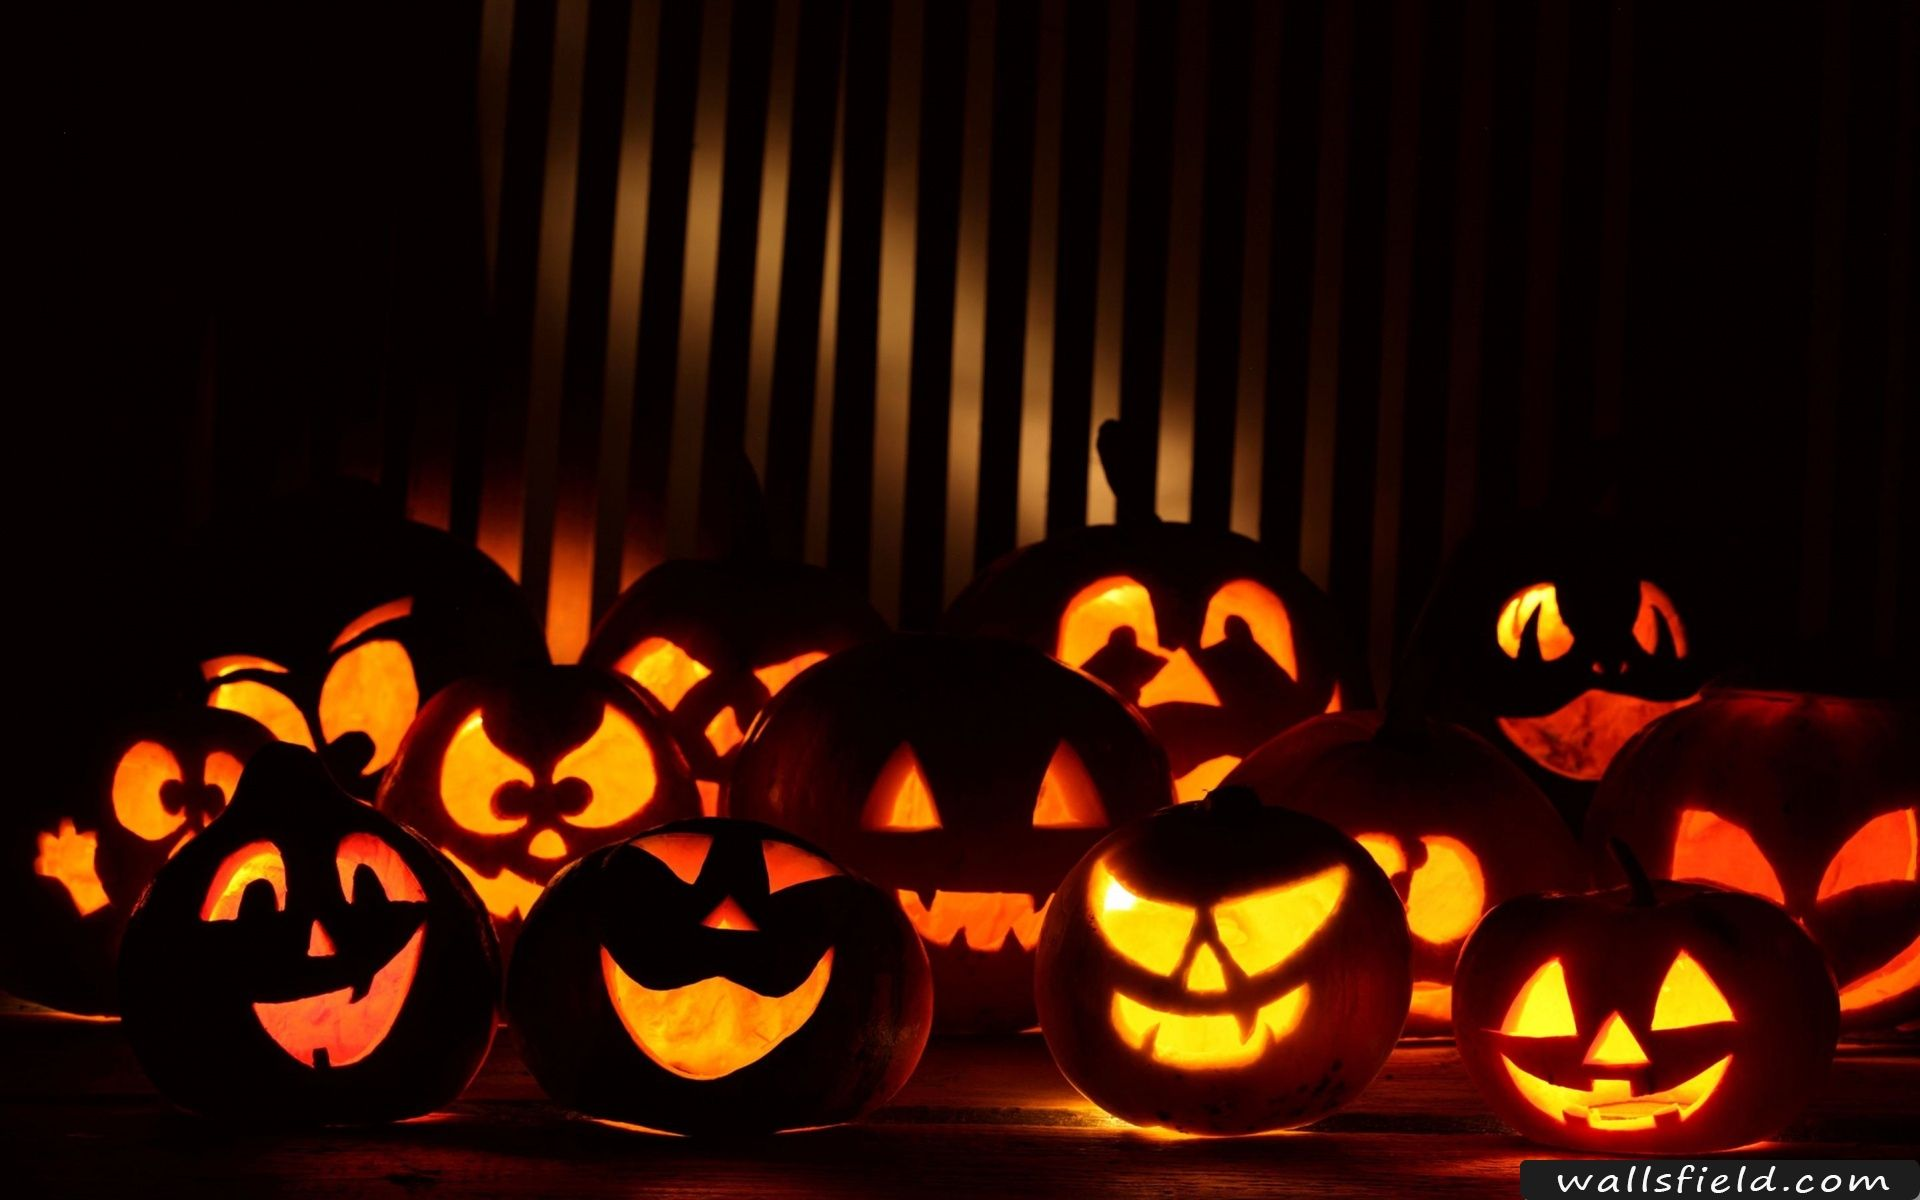 Happy Halloween Wallsfield Com Free Hd Wallpapers Scary Backgrounds Halloween Images Free Halloween Wallpaper